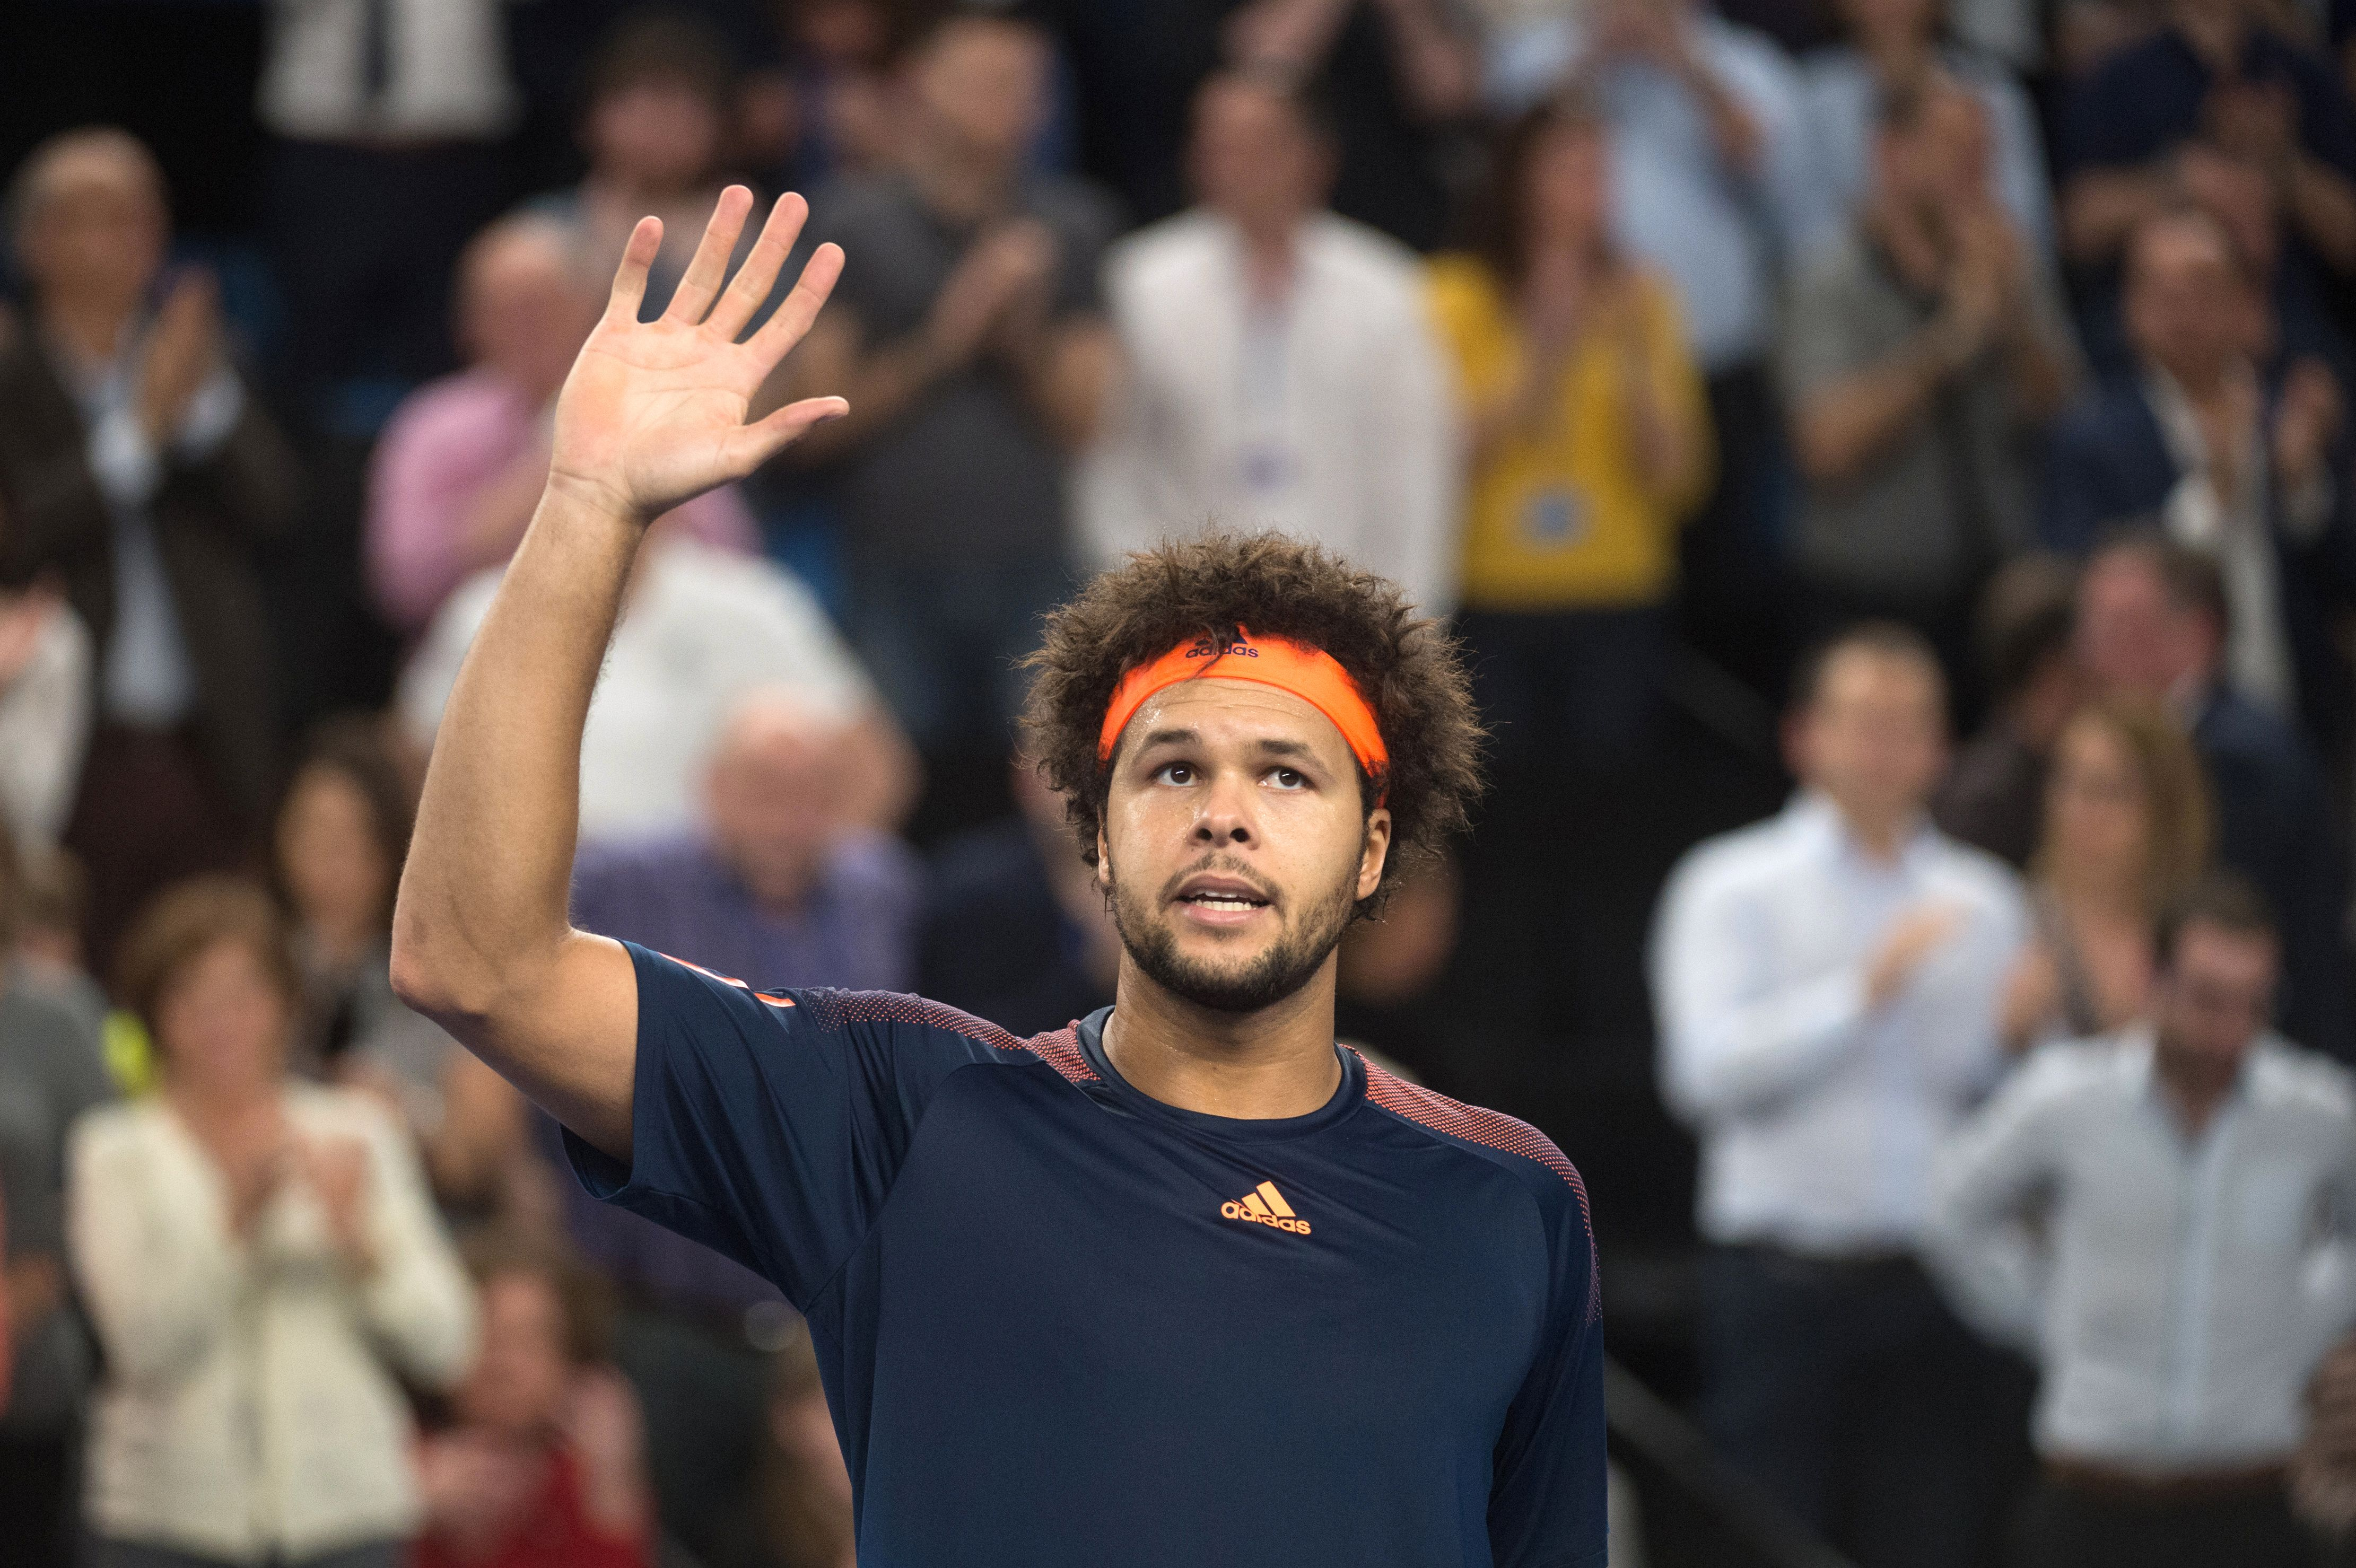 France's Jo-Wilfried Tsonga celebrates during his ATP Marseille Open 13 semi-final tennis match against Australia's Nick Kyrgios in Marseille, southern France, on February 25, 2017. / AFP / BERTRAND LANGLOIS (Photo credit should read BERTRAND LANGLOIS/AFP/Getty Images)